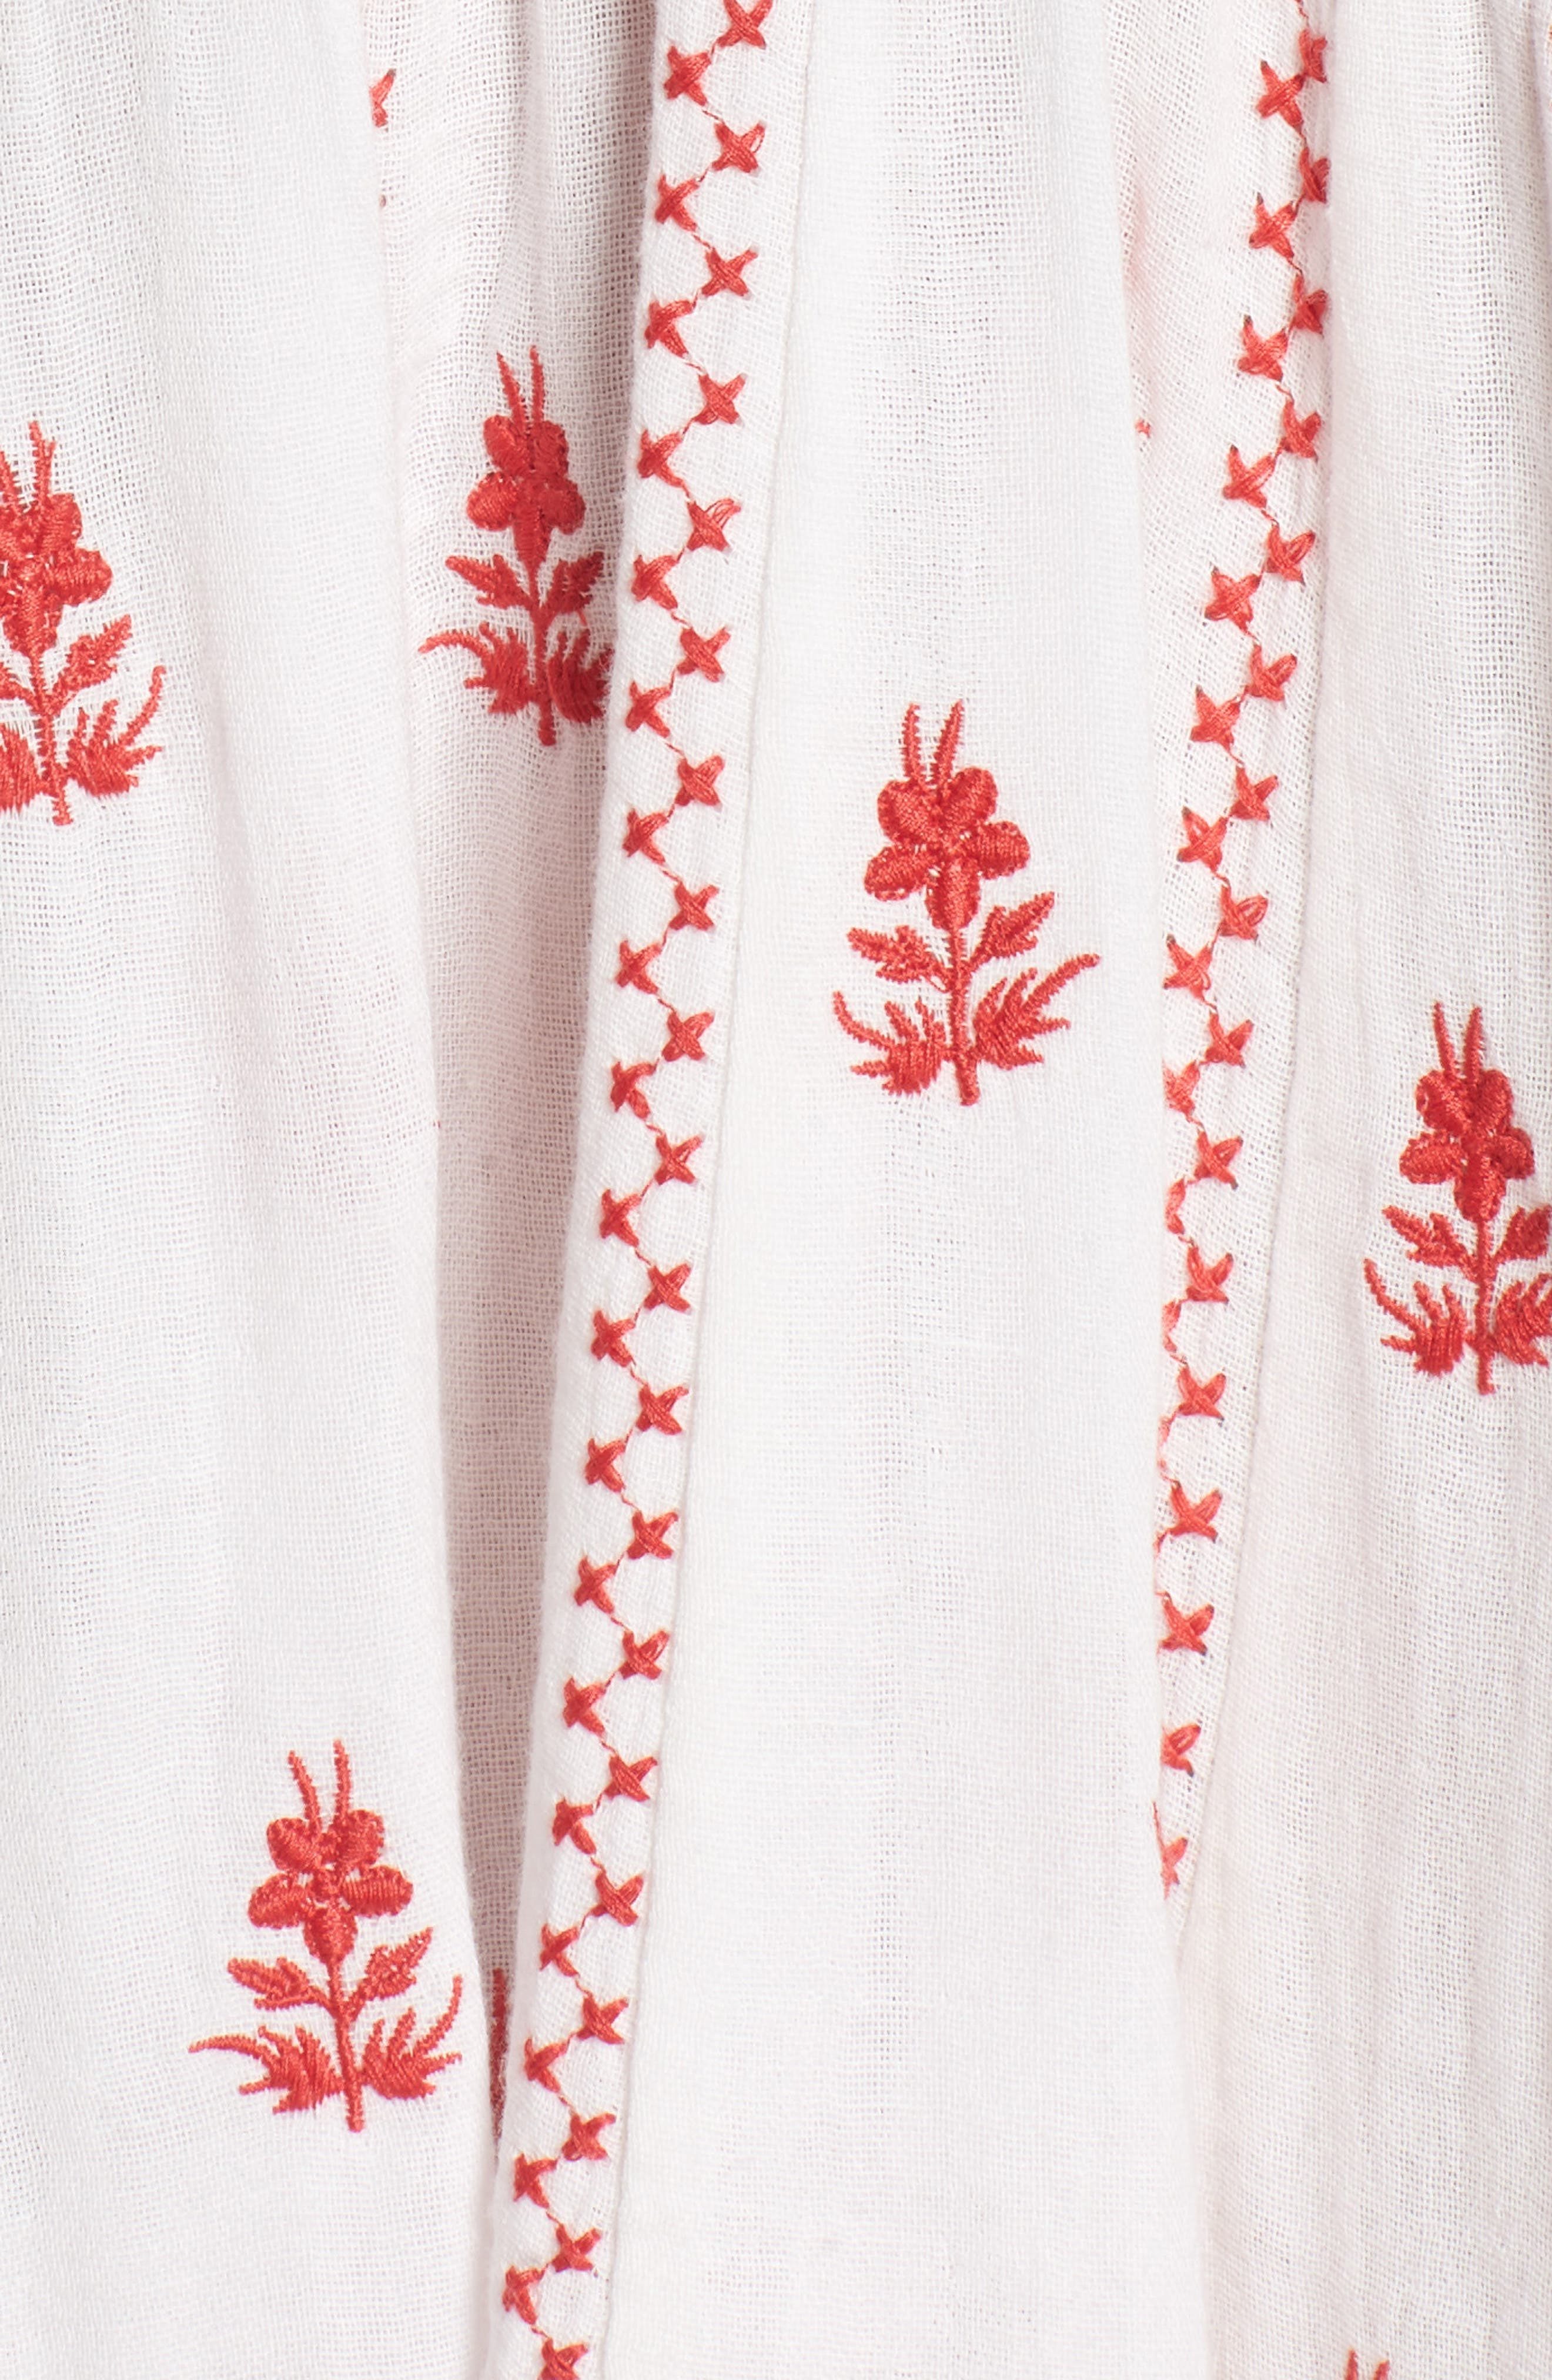 Ruby Embroidered Dress,                             Alternate thumbnail 6, color,